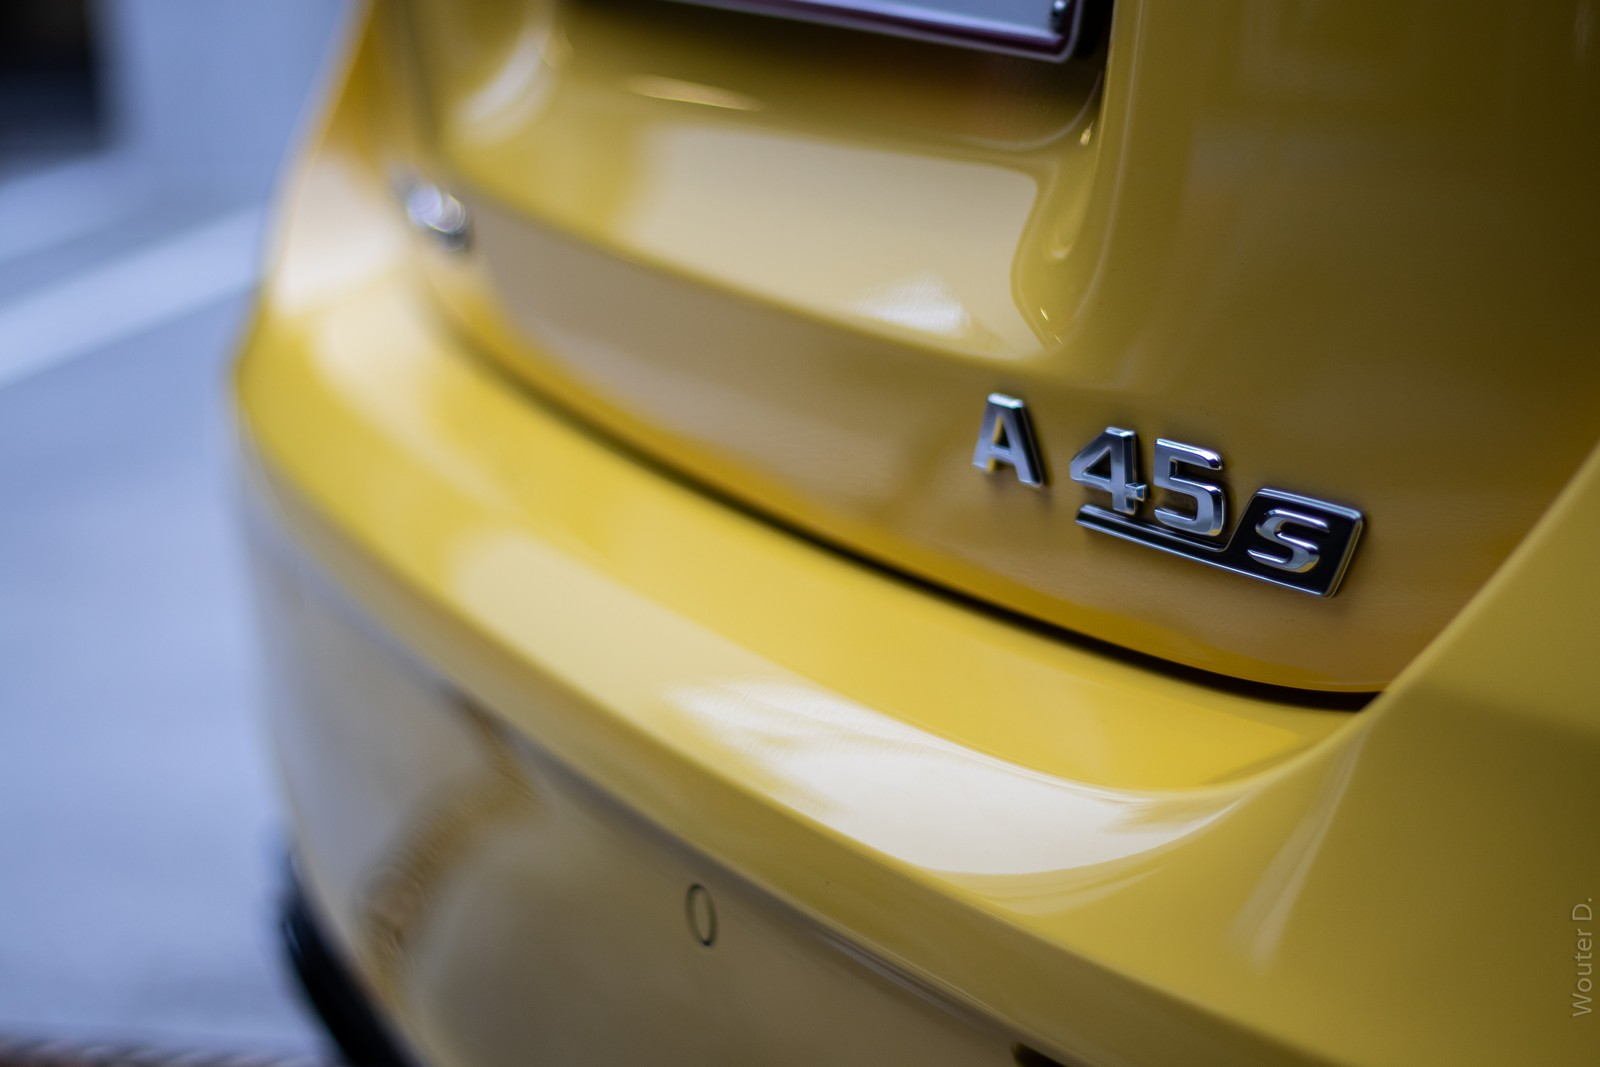 A45 S Badge